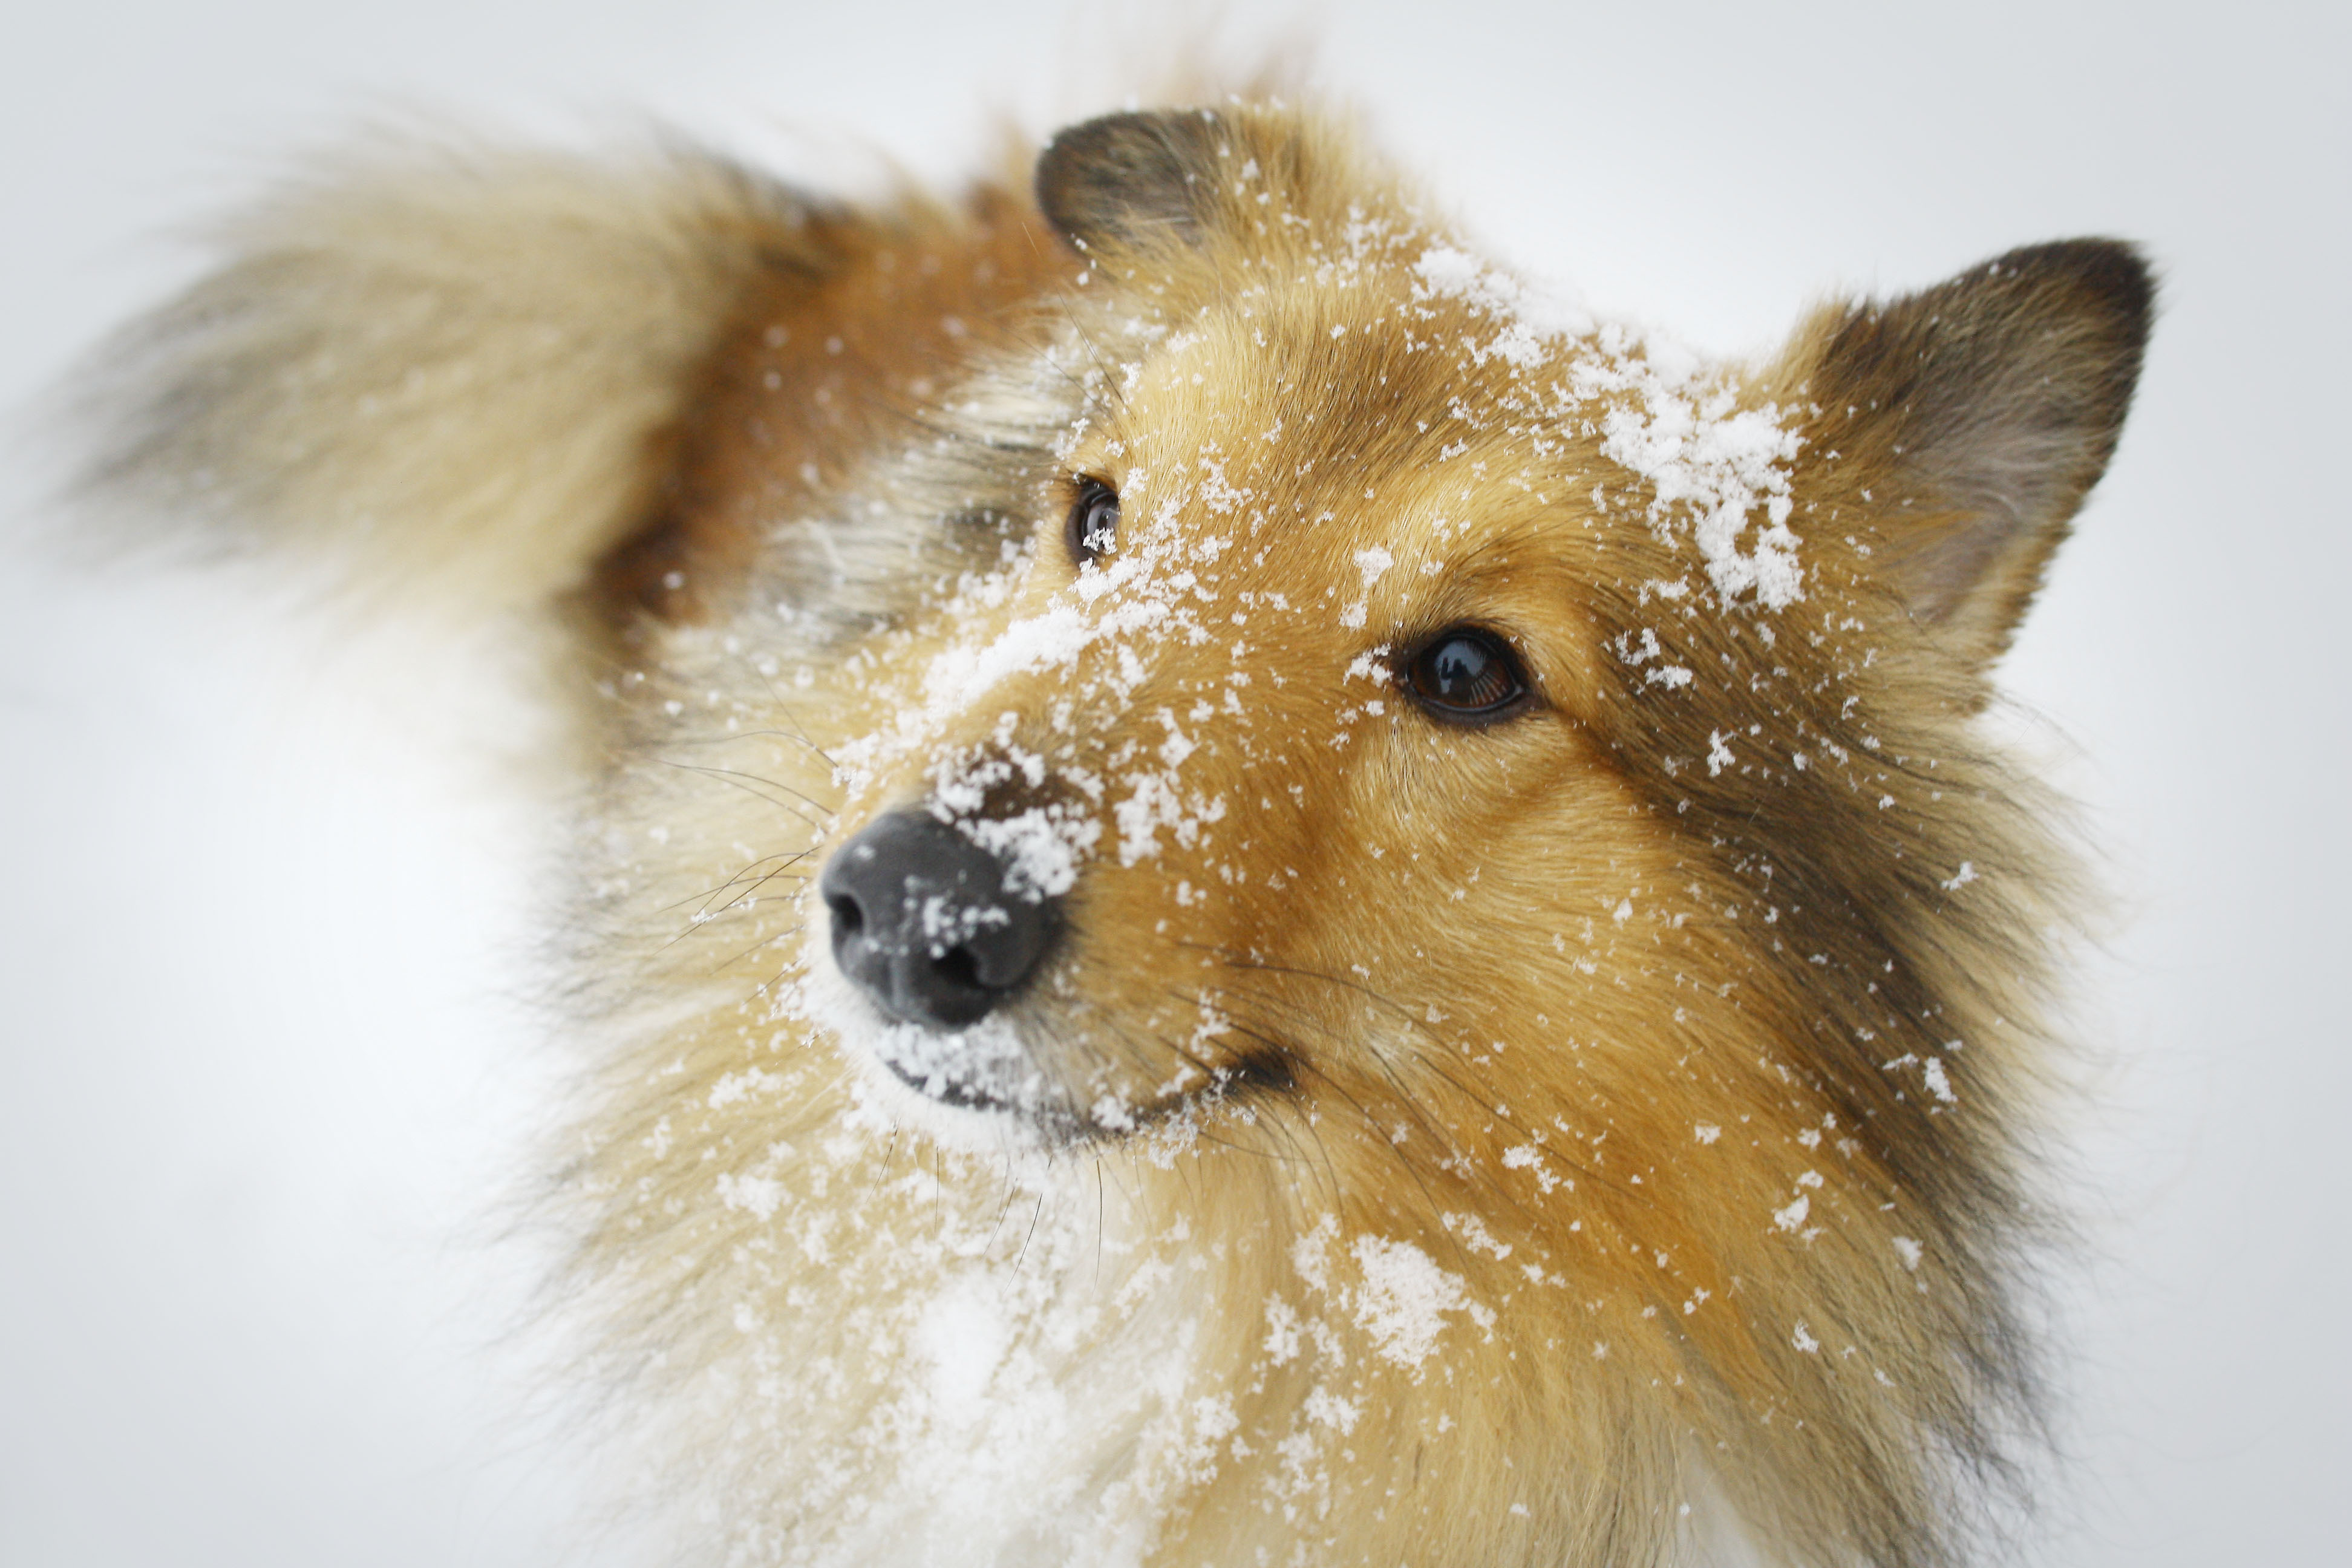 Sheltie breed dog in the snow wallpapers and images   wallpapers 3888x2592